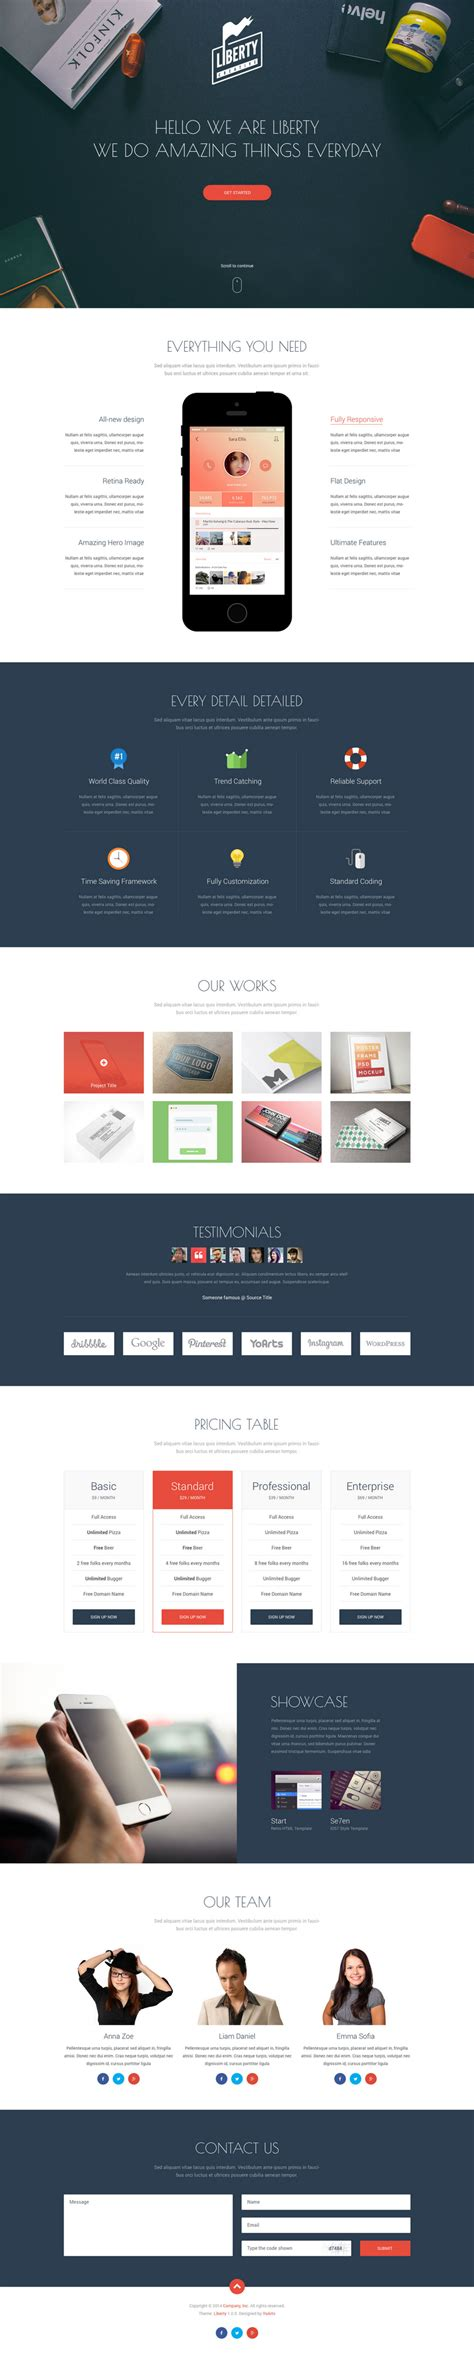 one page website template 10 best free website psd templates july 2014